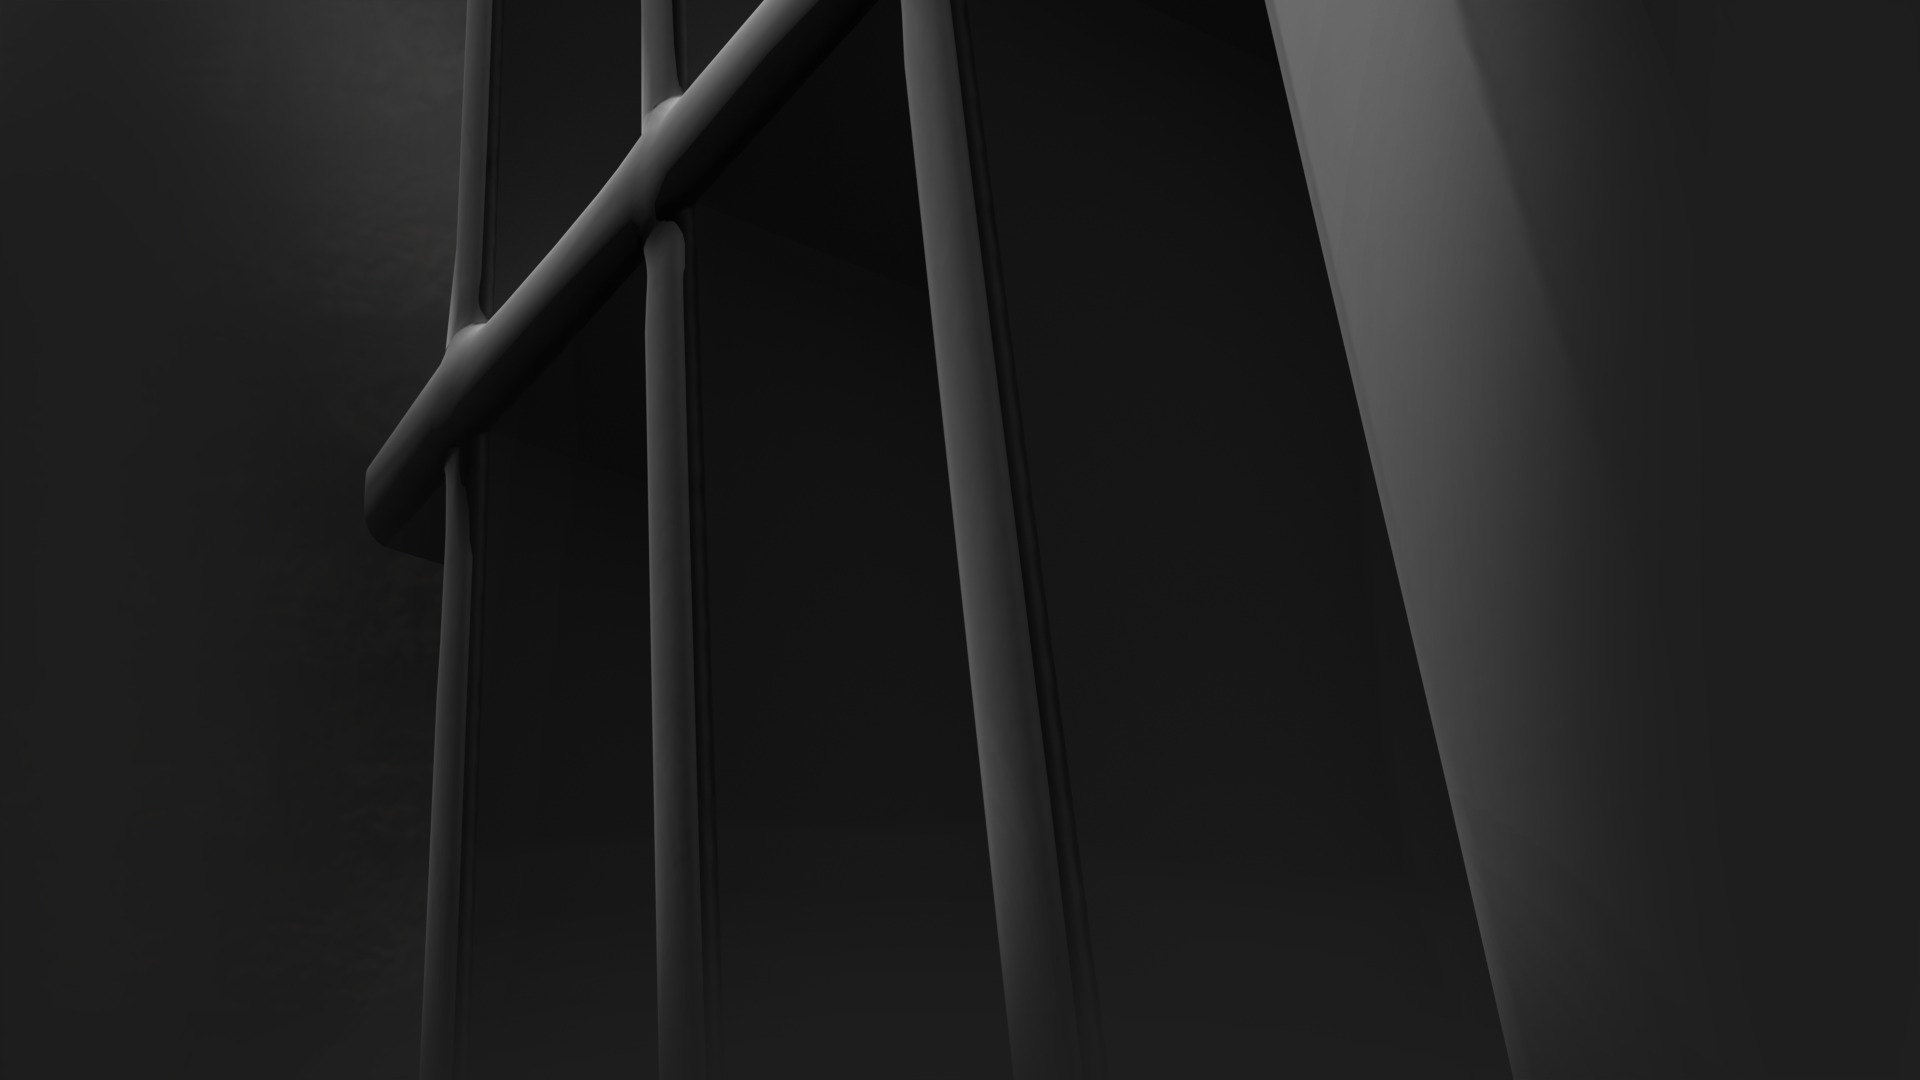 prison jail bars generic_233780